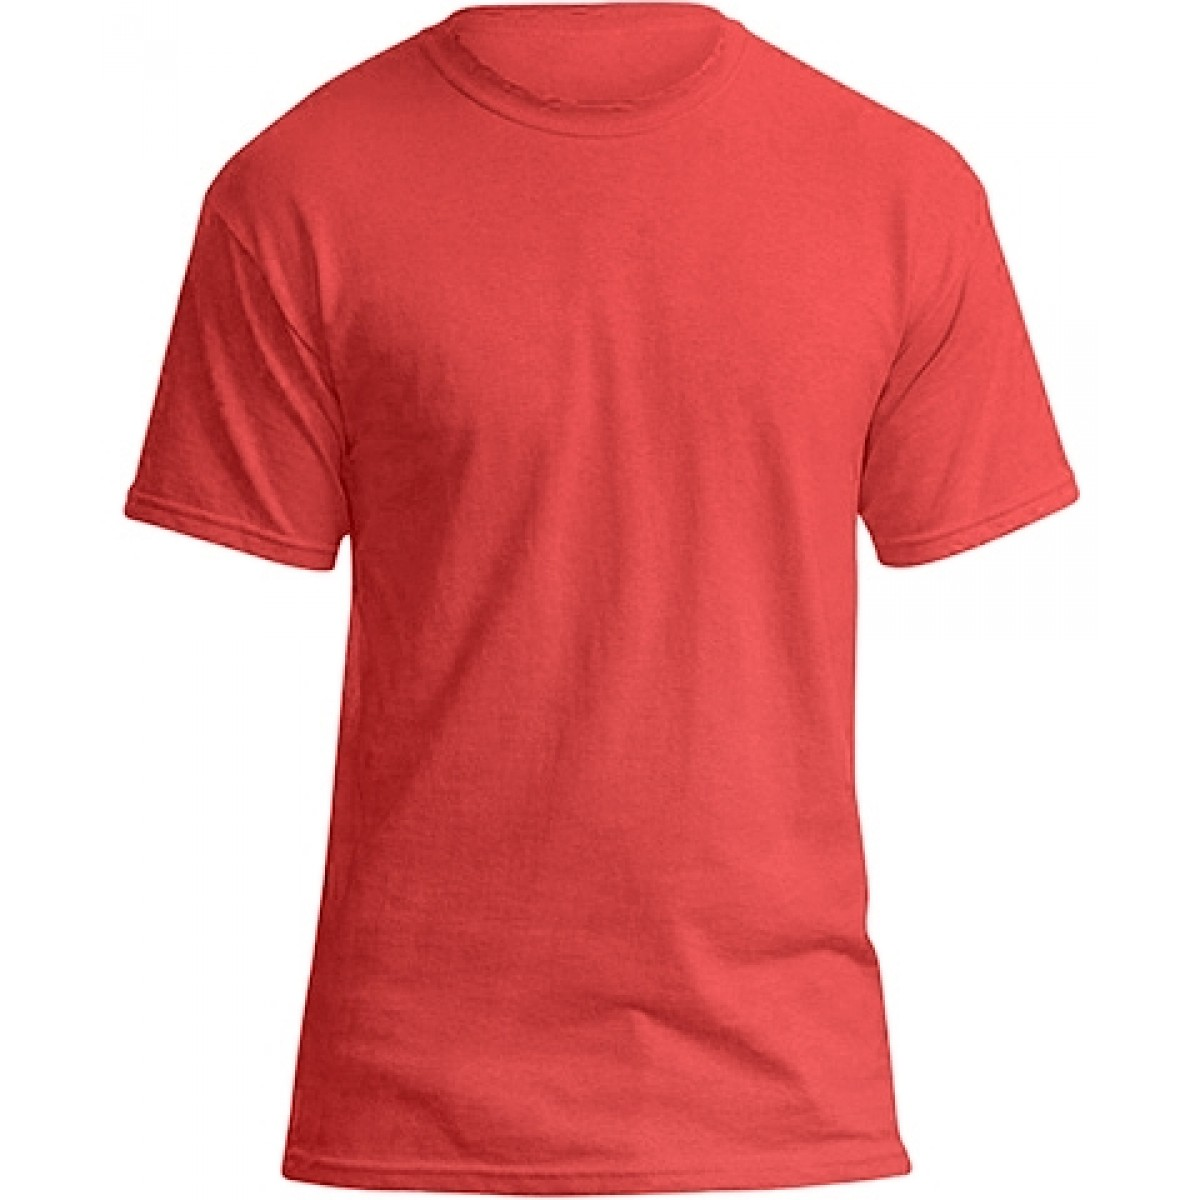 Soft 100% Cotton T-Shirt-Heather Red-XL